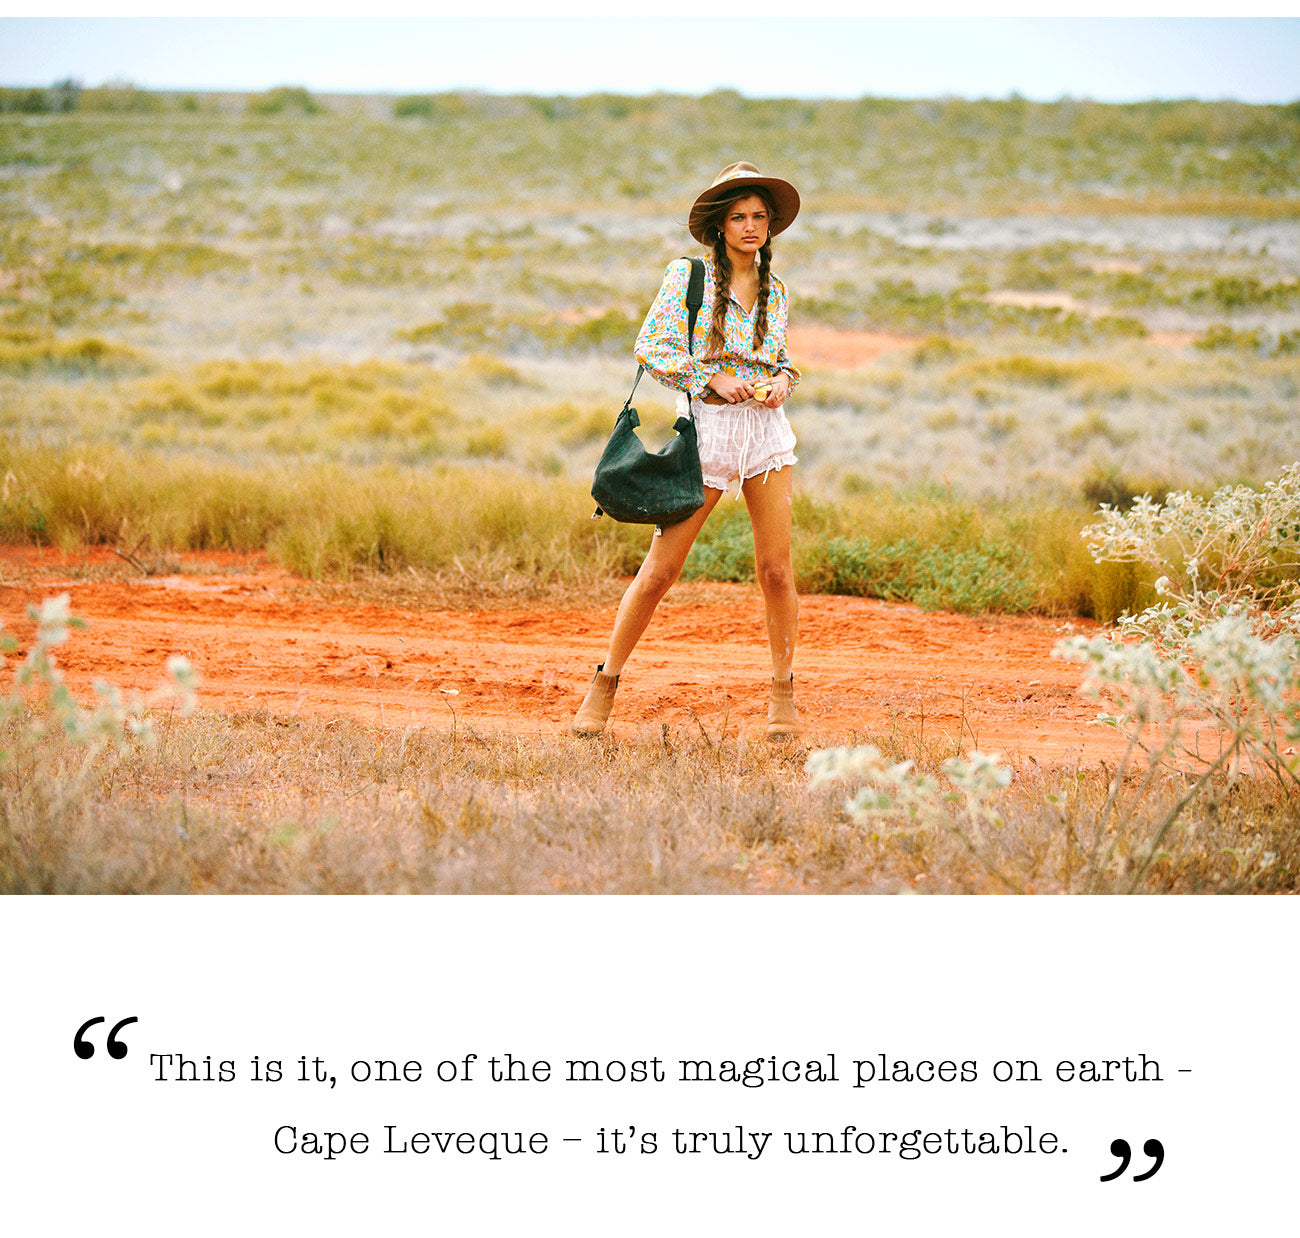 Behind the scenes pics from Arnhem family travel adventure to Cape Leveque WA